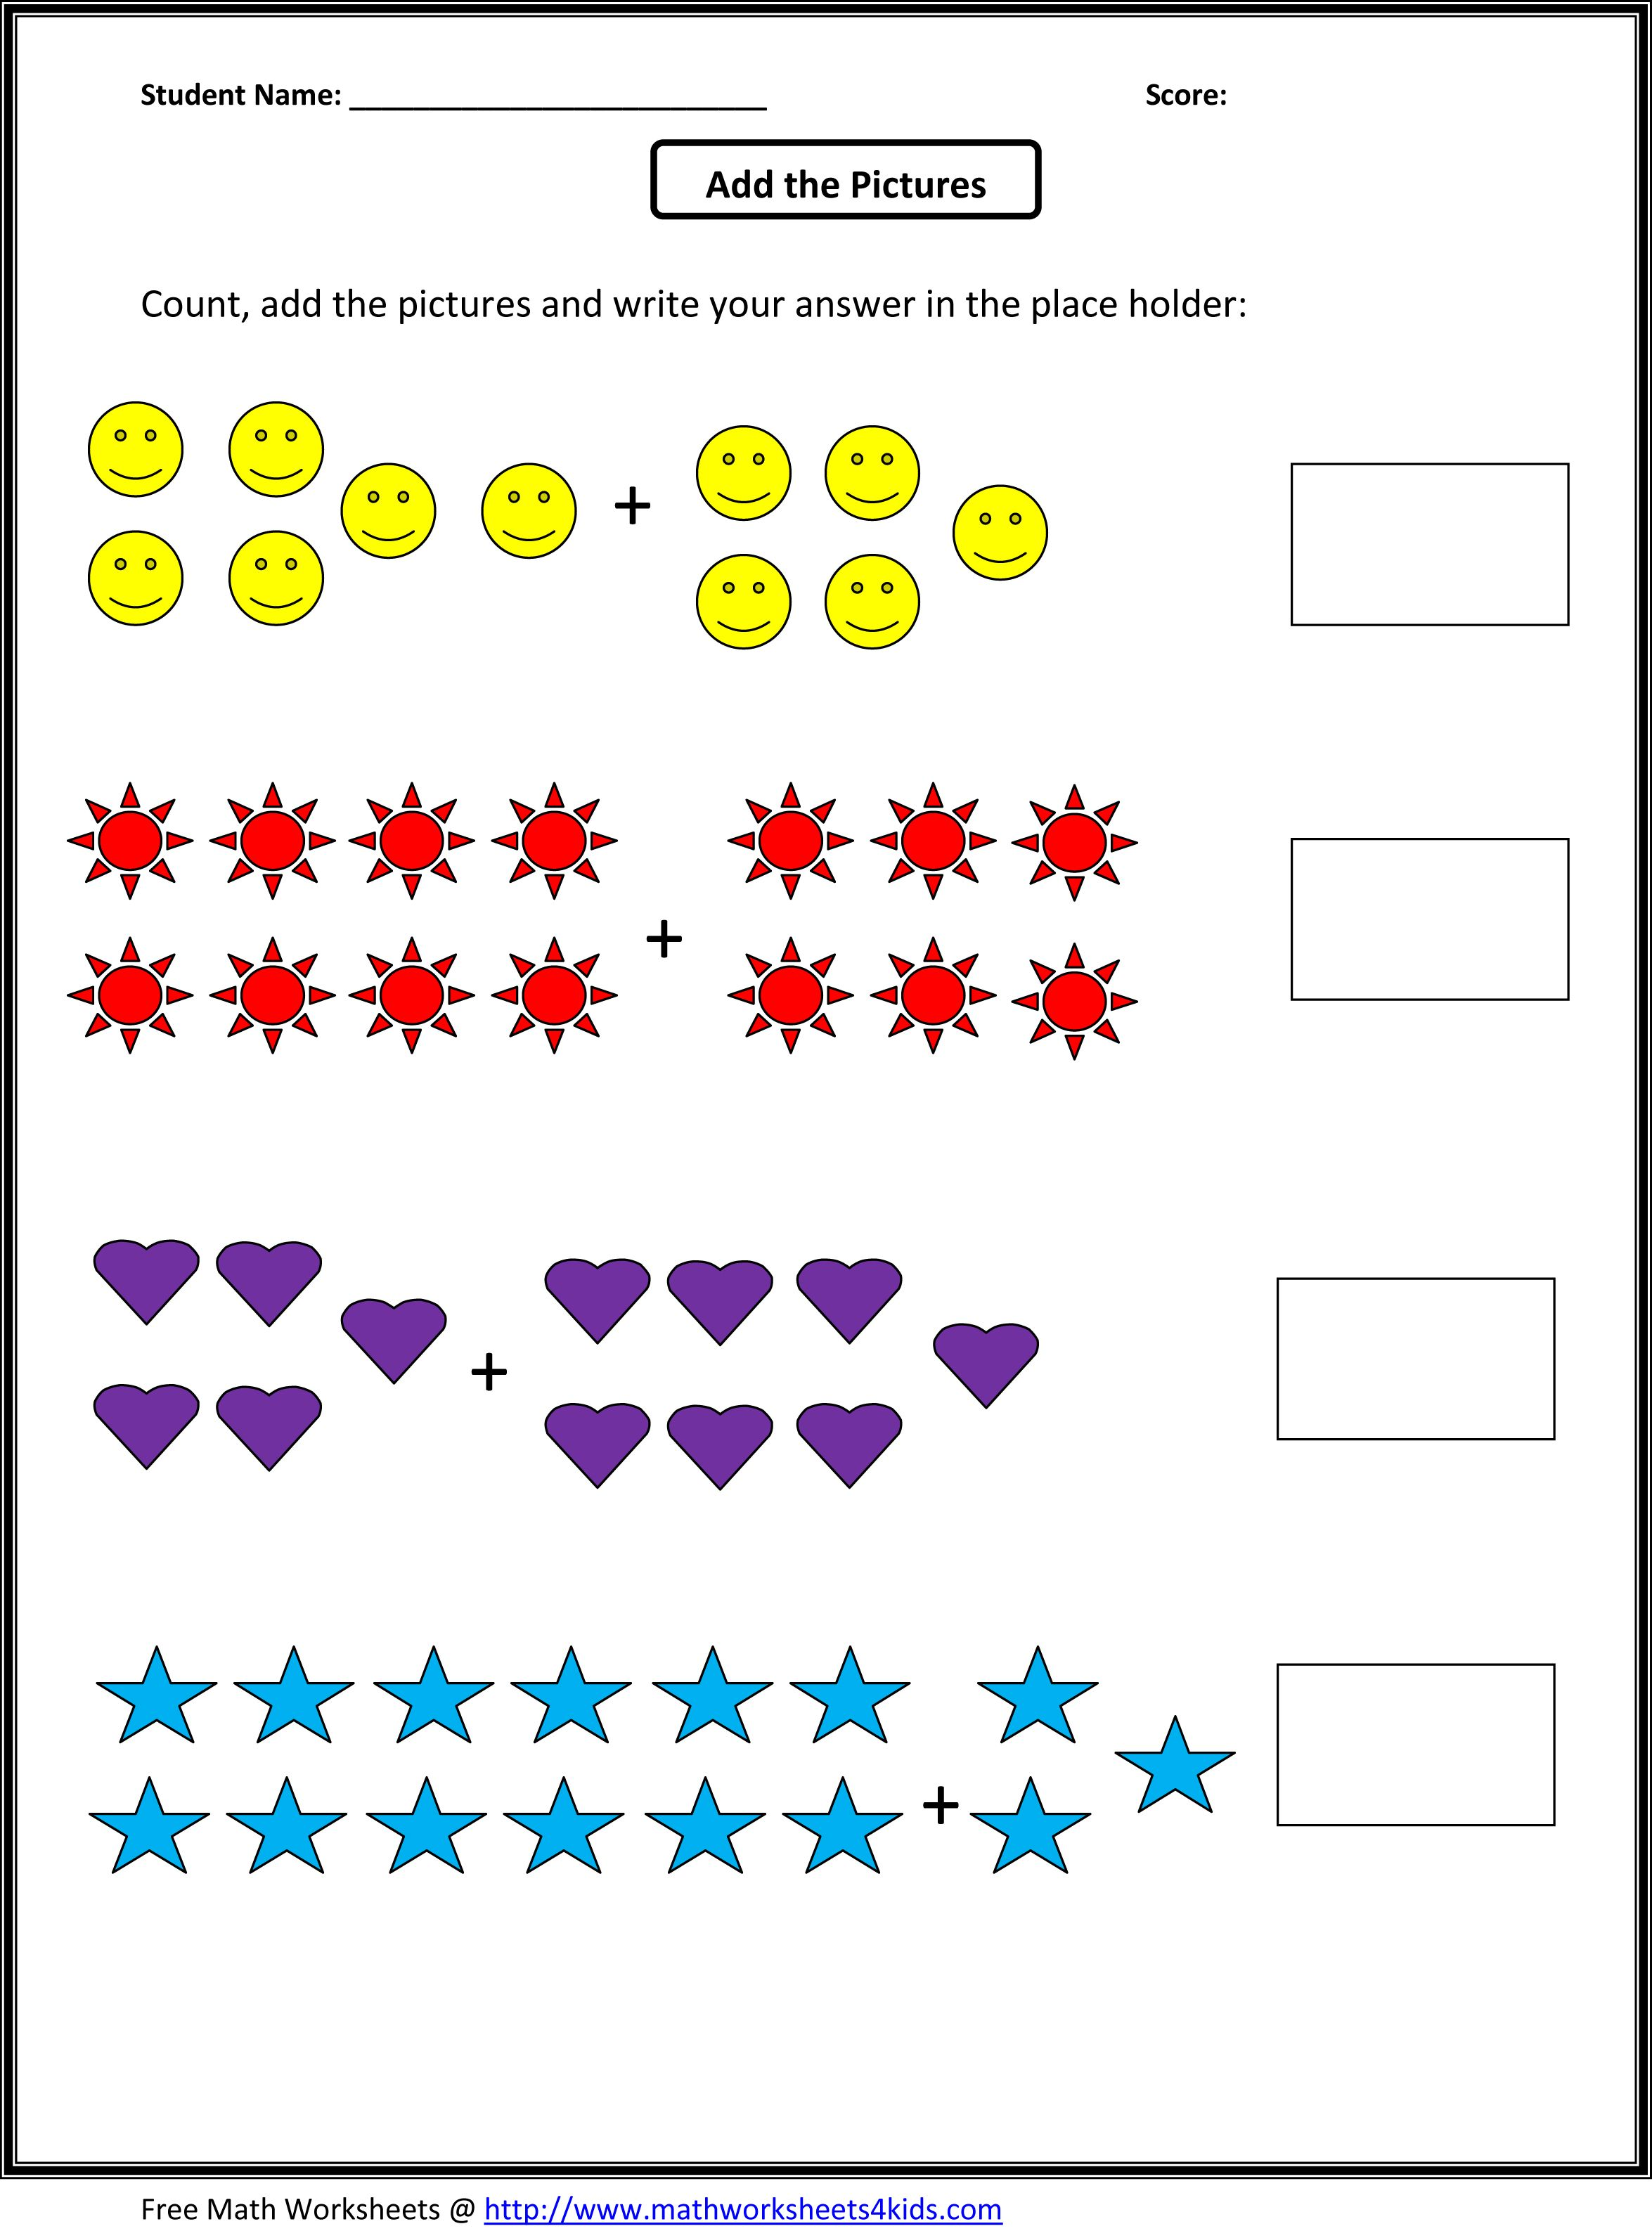 Aldiablosus  Terrific Worksheet For Math Grade   Coffemix With Inspiring  Images About School On Pinterest  Mental Maths Worksheets  With Agreeable Credit Limit Worksheet  Also Area Of Rectangle Worksheets In Addition Simplifying Expressions Worksheets With Answers And Advanced Multiplication Worksheets As Well As Living And Nonliving Worksheets For Kindergarten Additionally Long Vowel Digraphs Worksheets From Coffemixcom With Aldiablosus  Inspiring Worksheet For Math Grade   Coffemix With Agreeable  Images About School On Pinterest  Mental Maths Worksheets  And Terrific Credit Limit Worksheet  Also Area Of Rectangle Worksheets In Addition Simplifying Expressions Worksheets With Answers From Coffemixcom